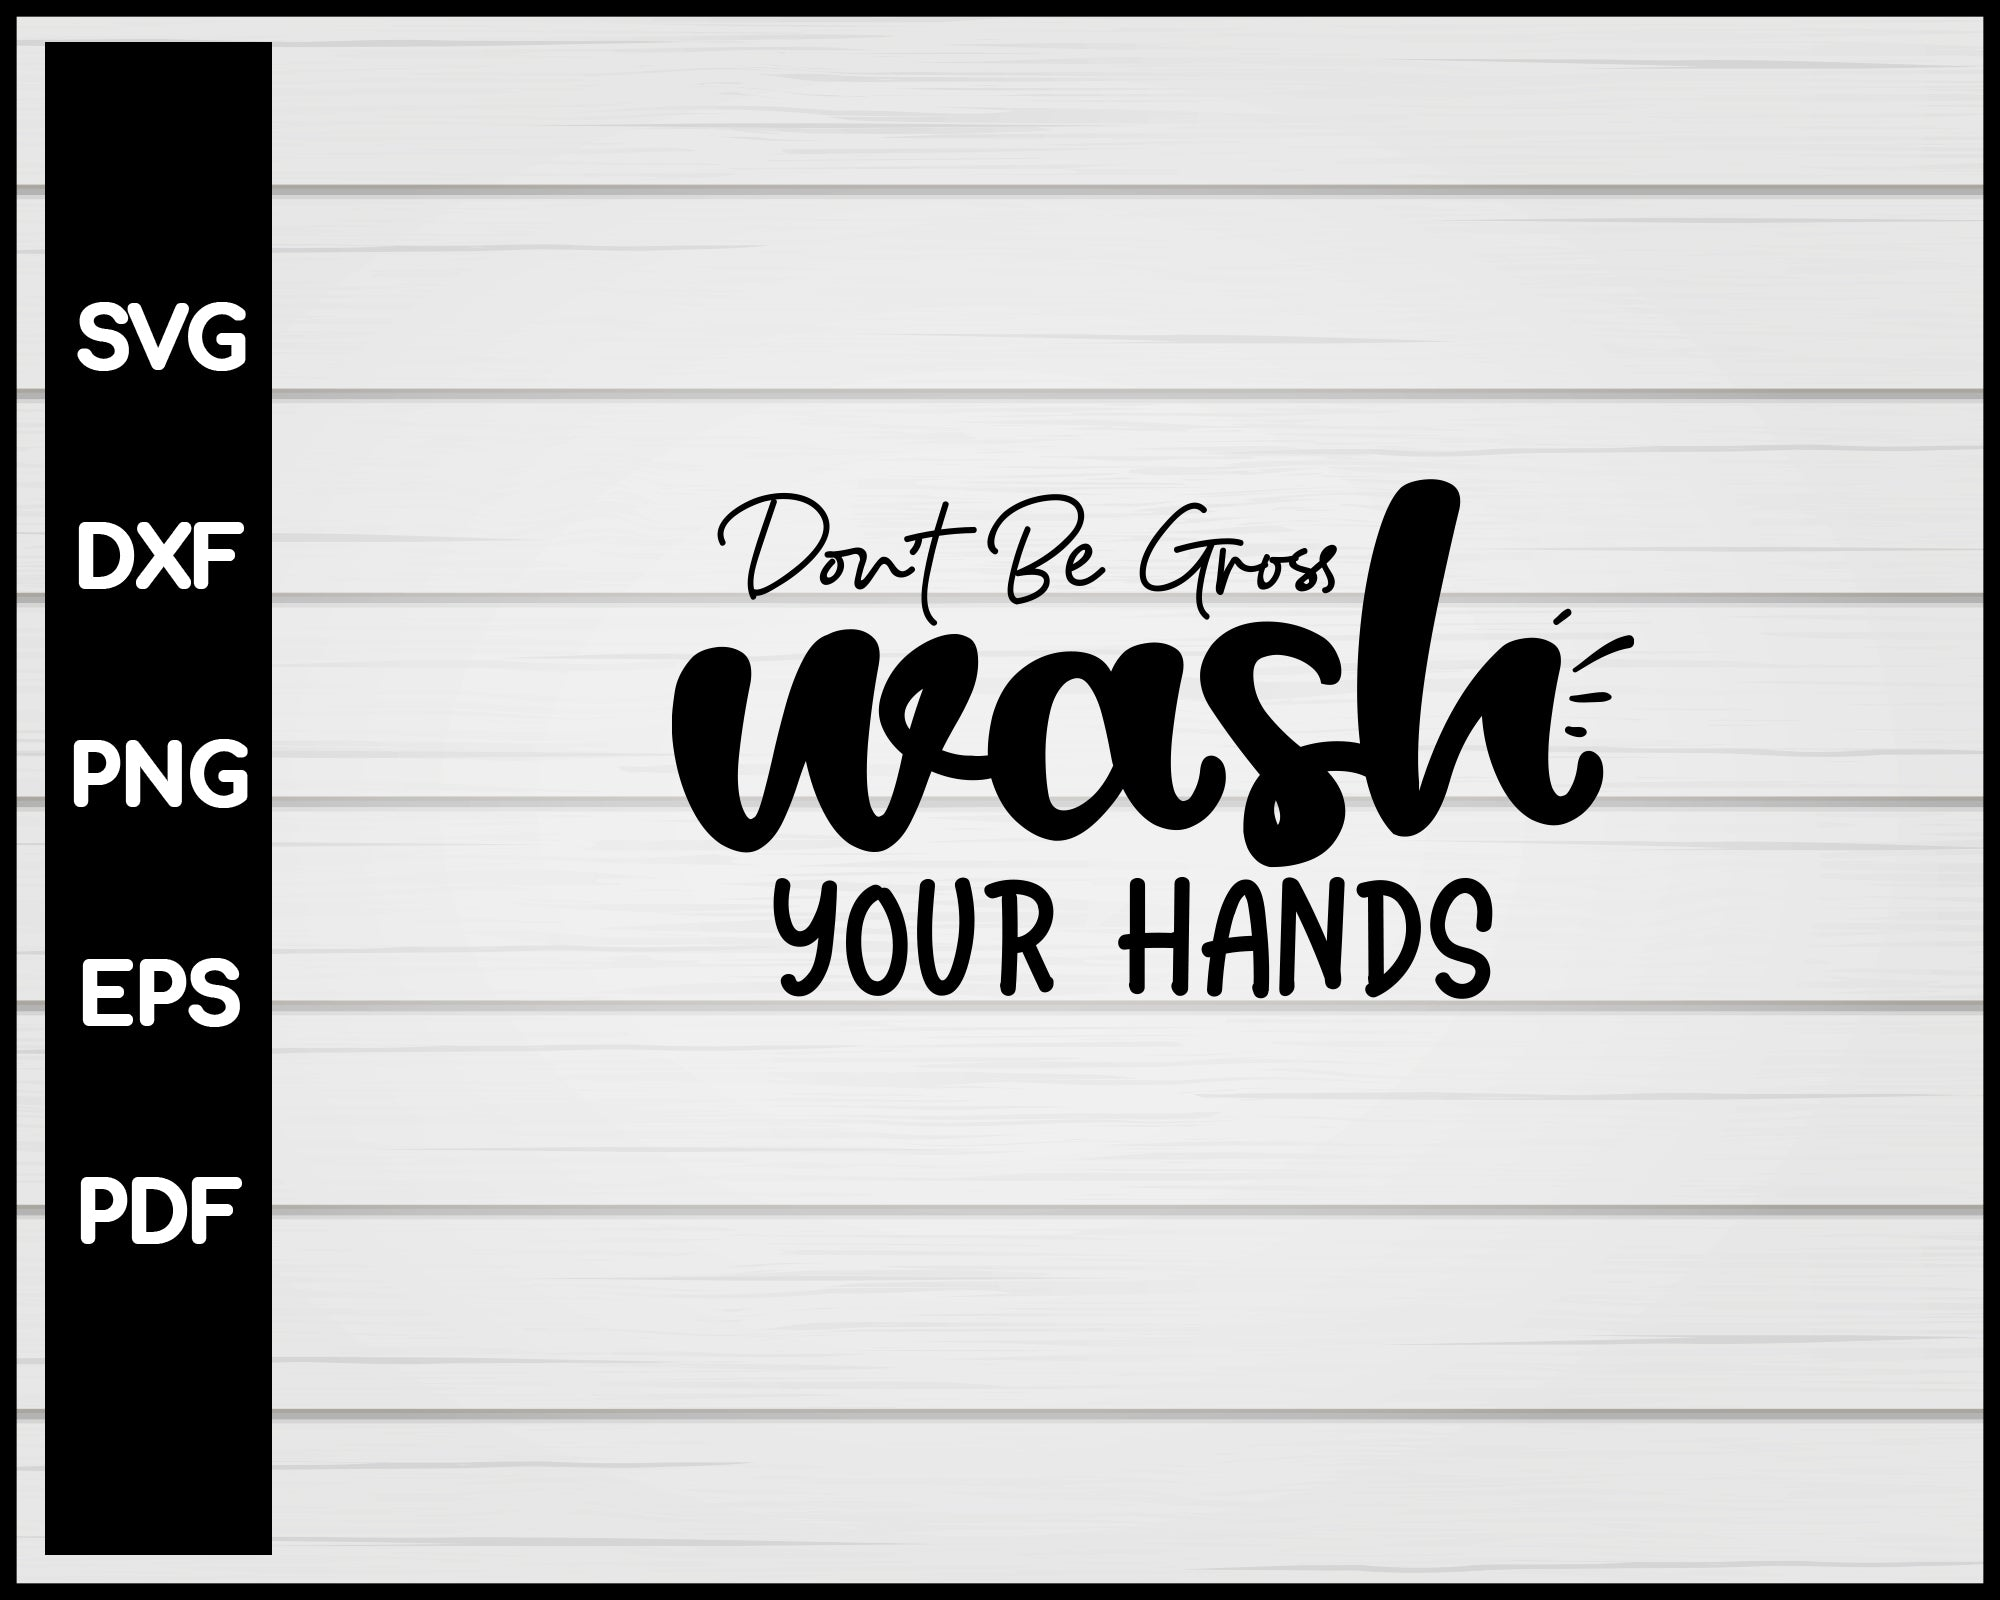 Don't Be Gross Wash Your Hands svg Cut File For Cricut Silhouette eps png dxf Printable Files